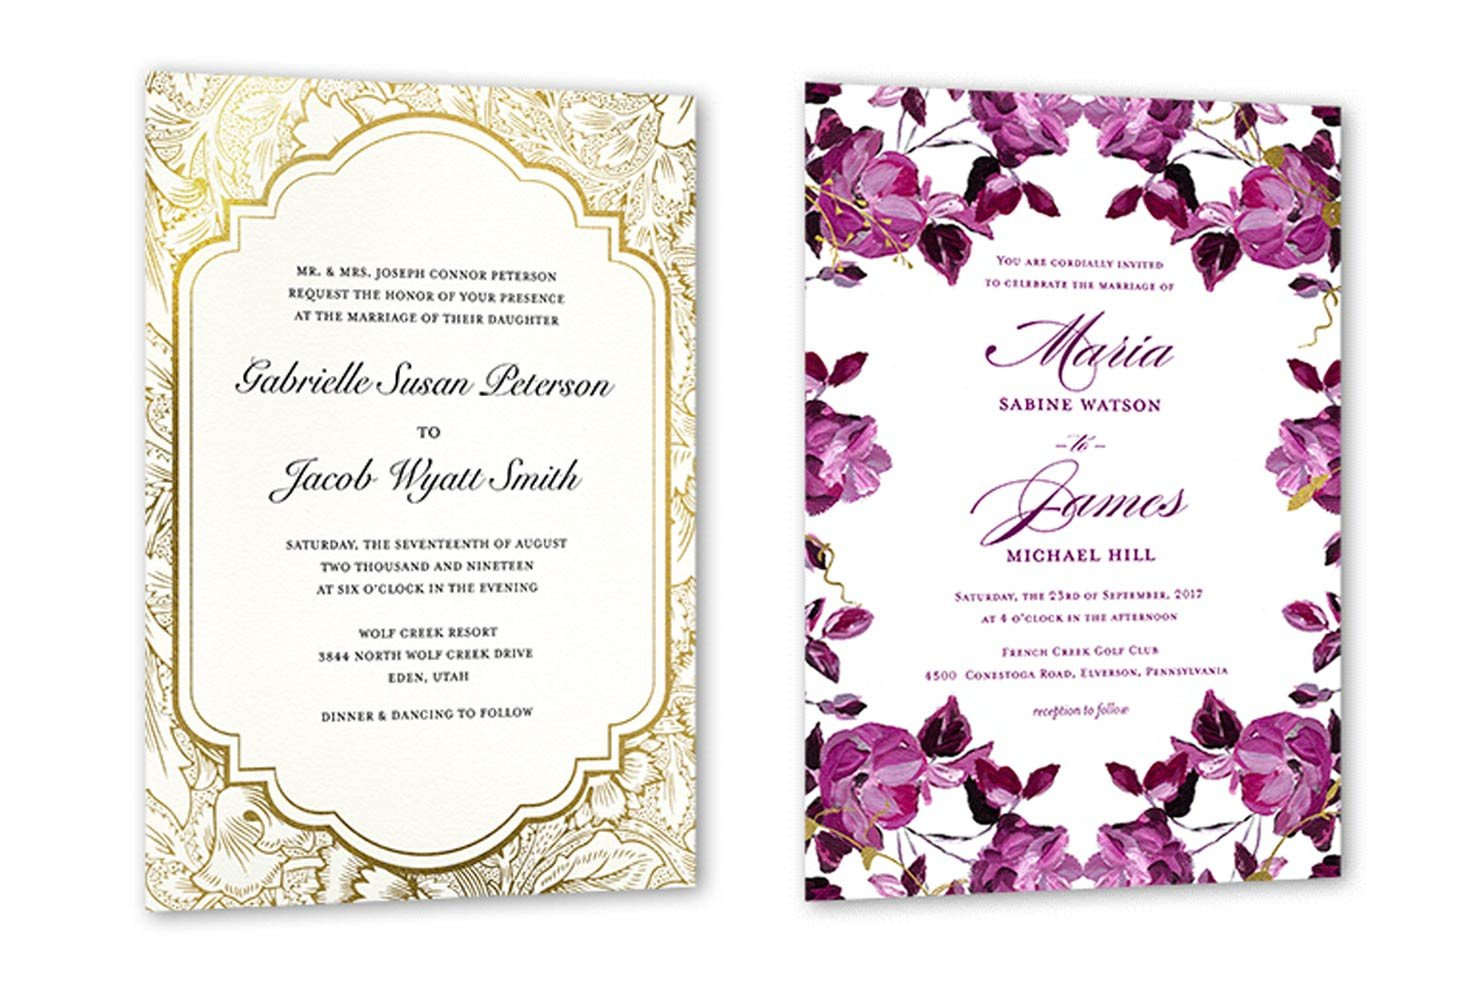 Sample Wedding Invitations Templates 35 Wedding Invitation Wording Examples 2019